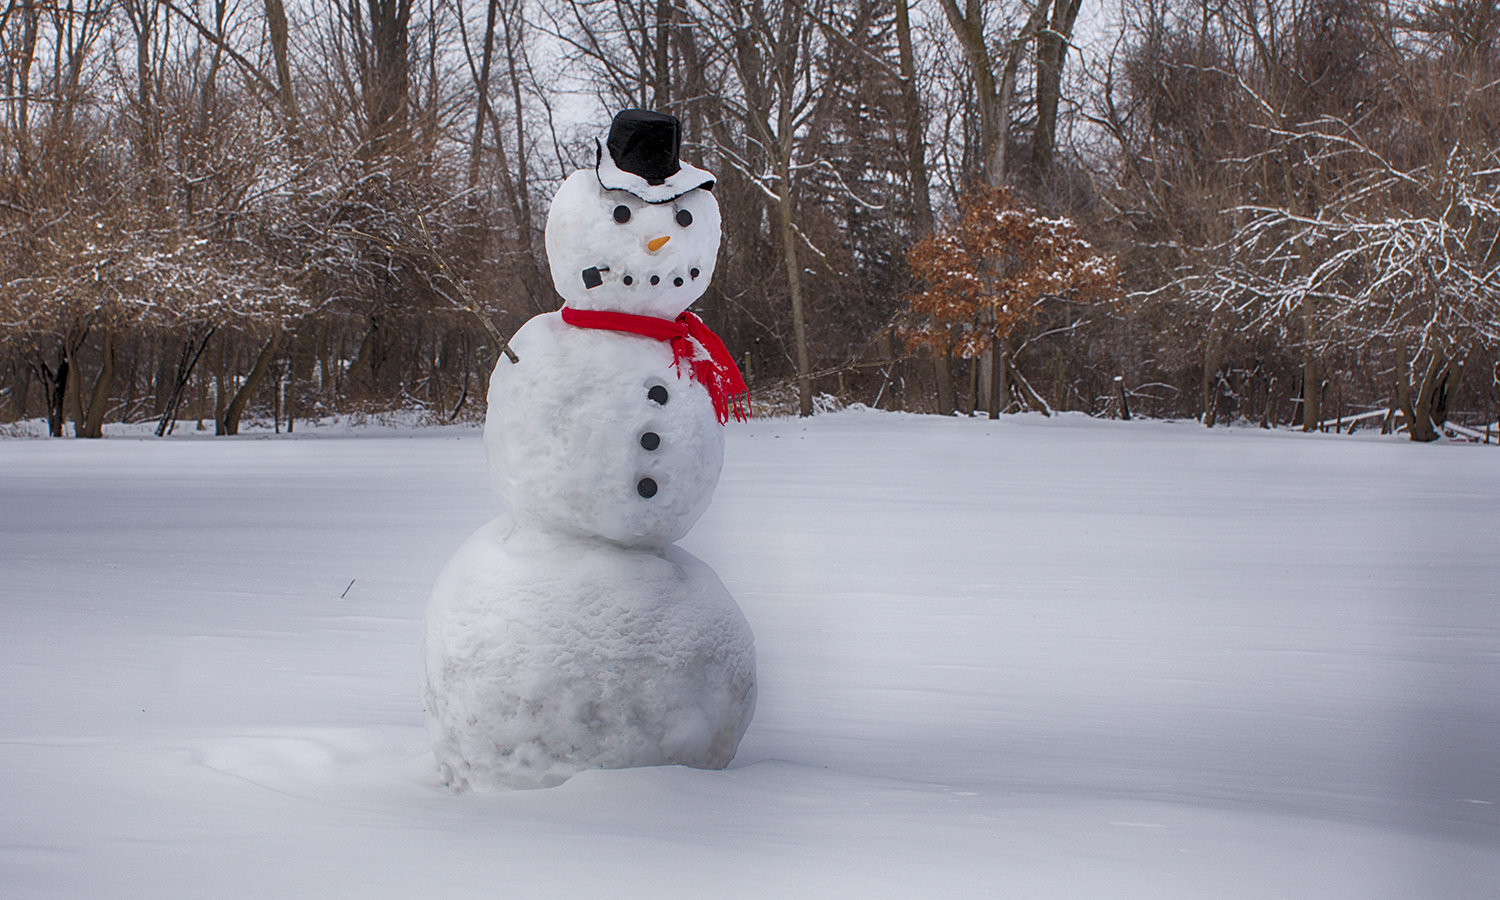 Complete with hat, scarf and pipe, a snowman grins in a field along routes 5 and 20 near campus.